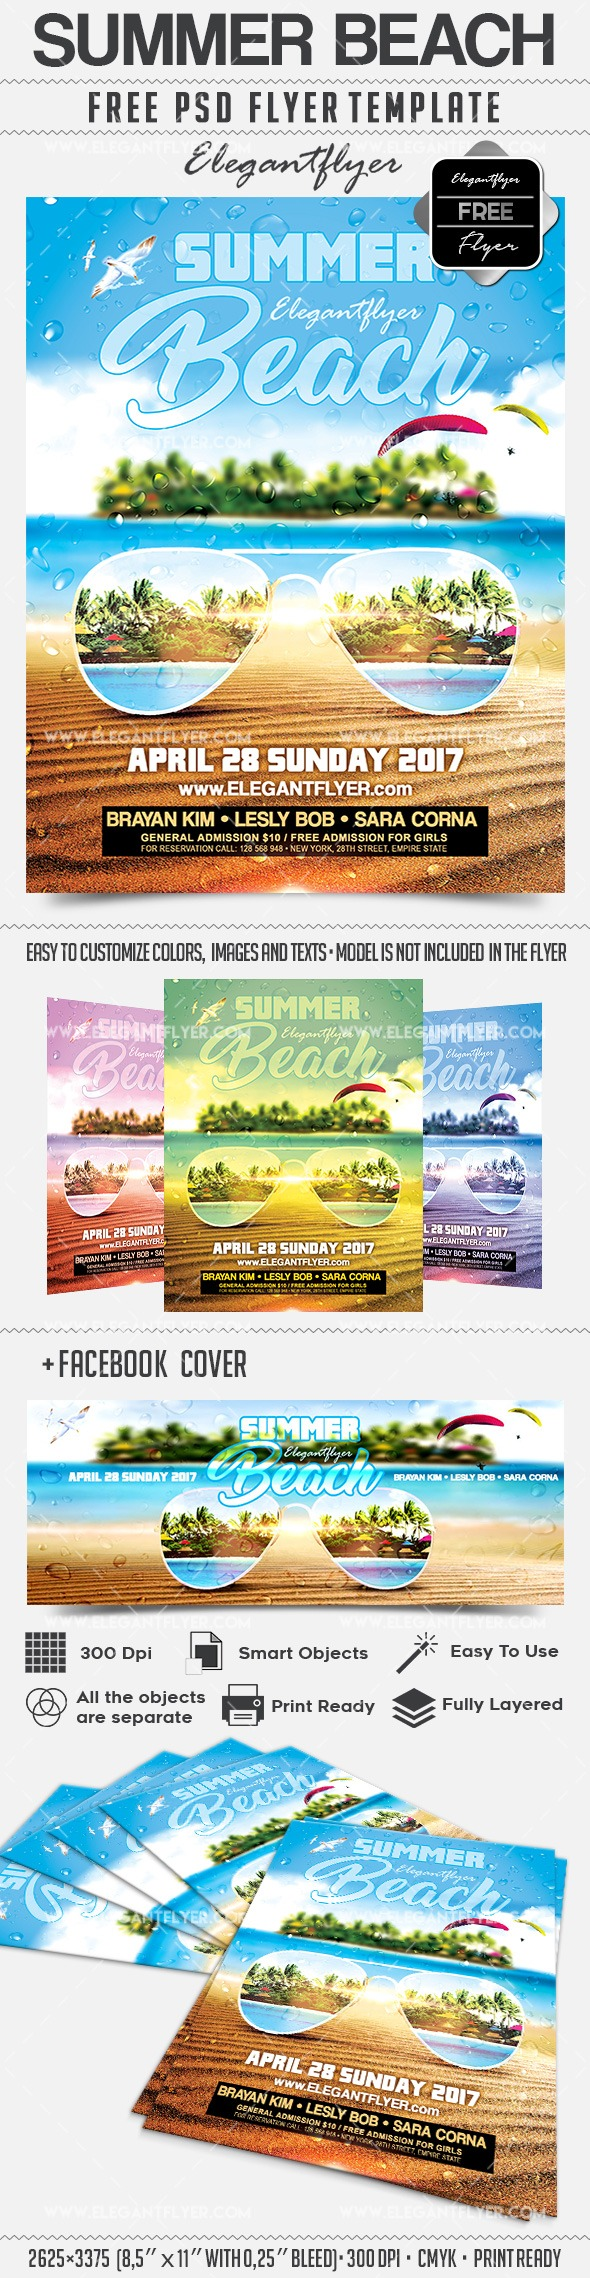 Summer Beach – Free Flyer PSD Template + Facebook Cover